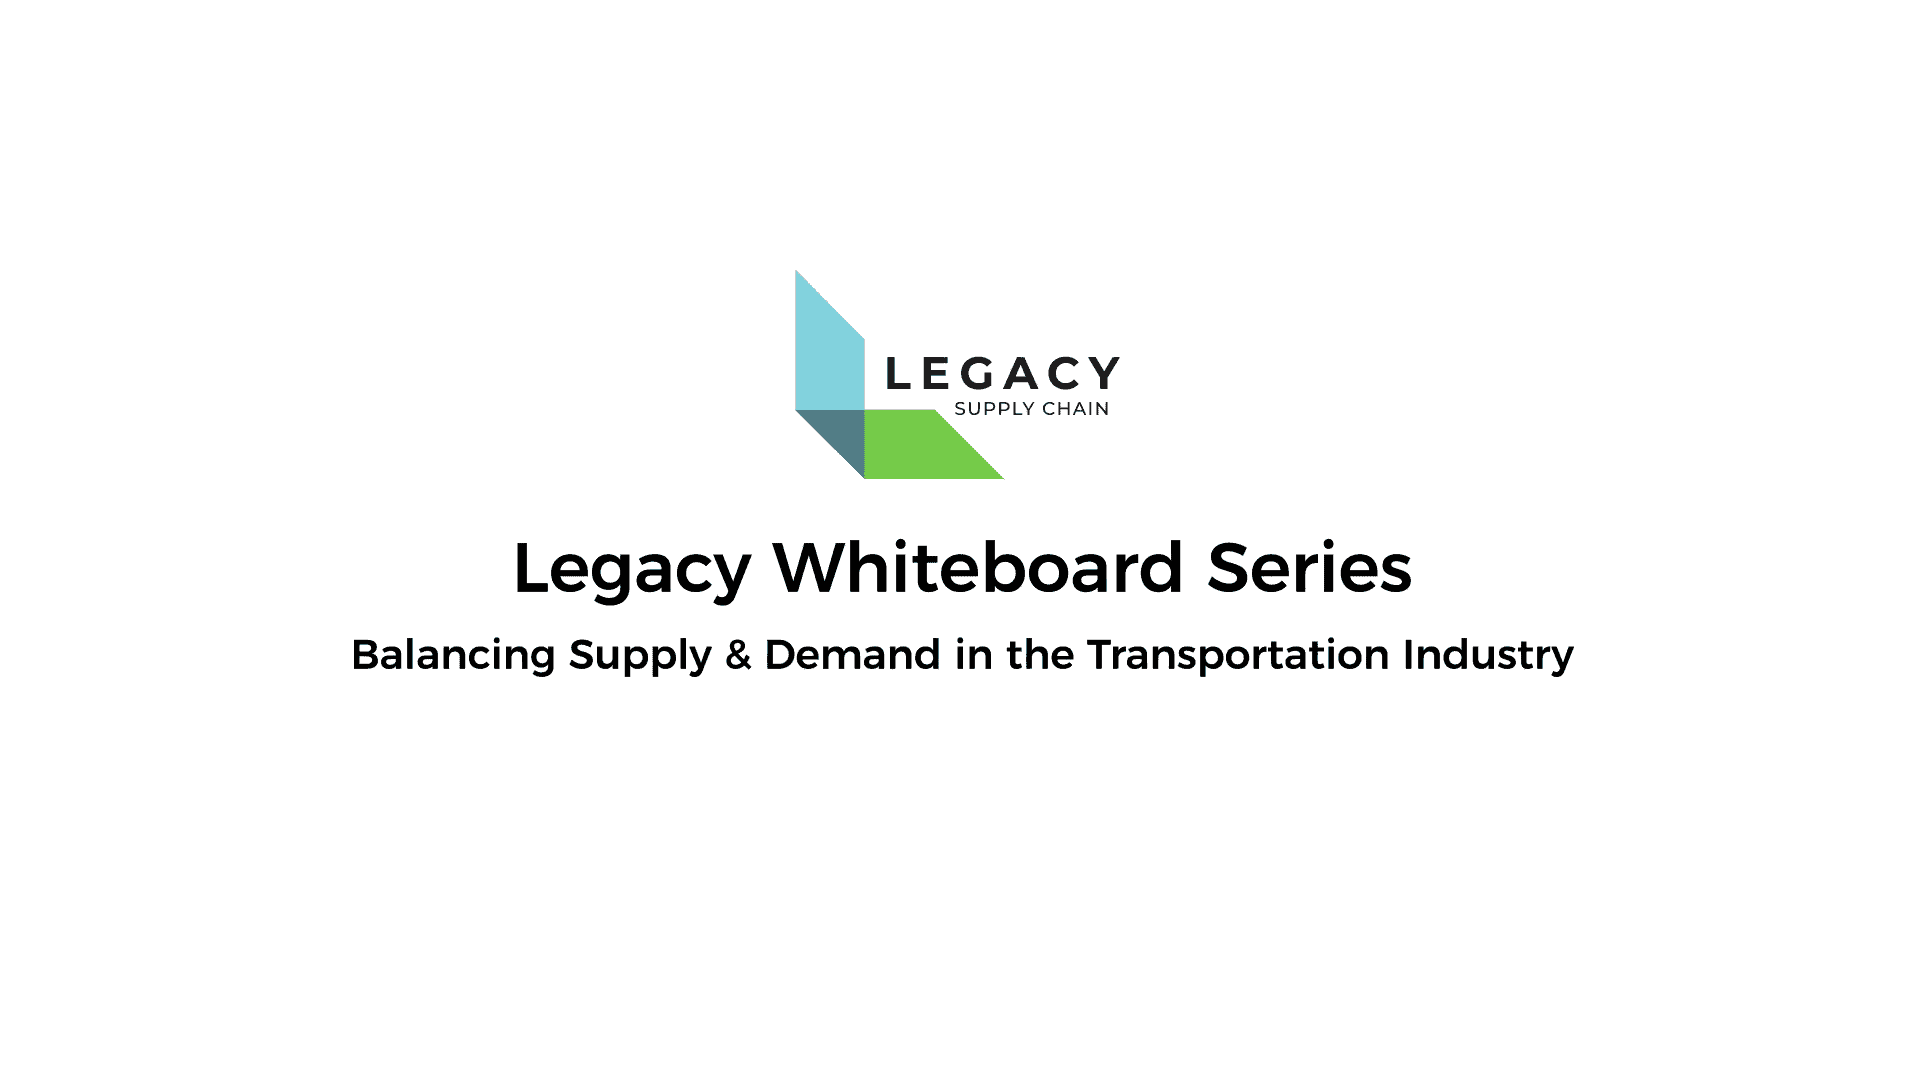 Balancing Supply & Demand in the Transportation Industry